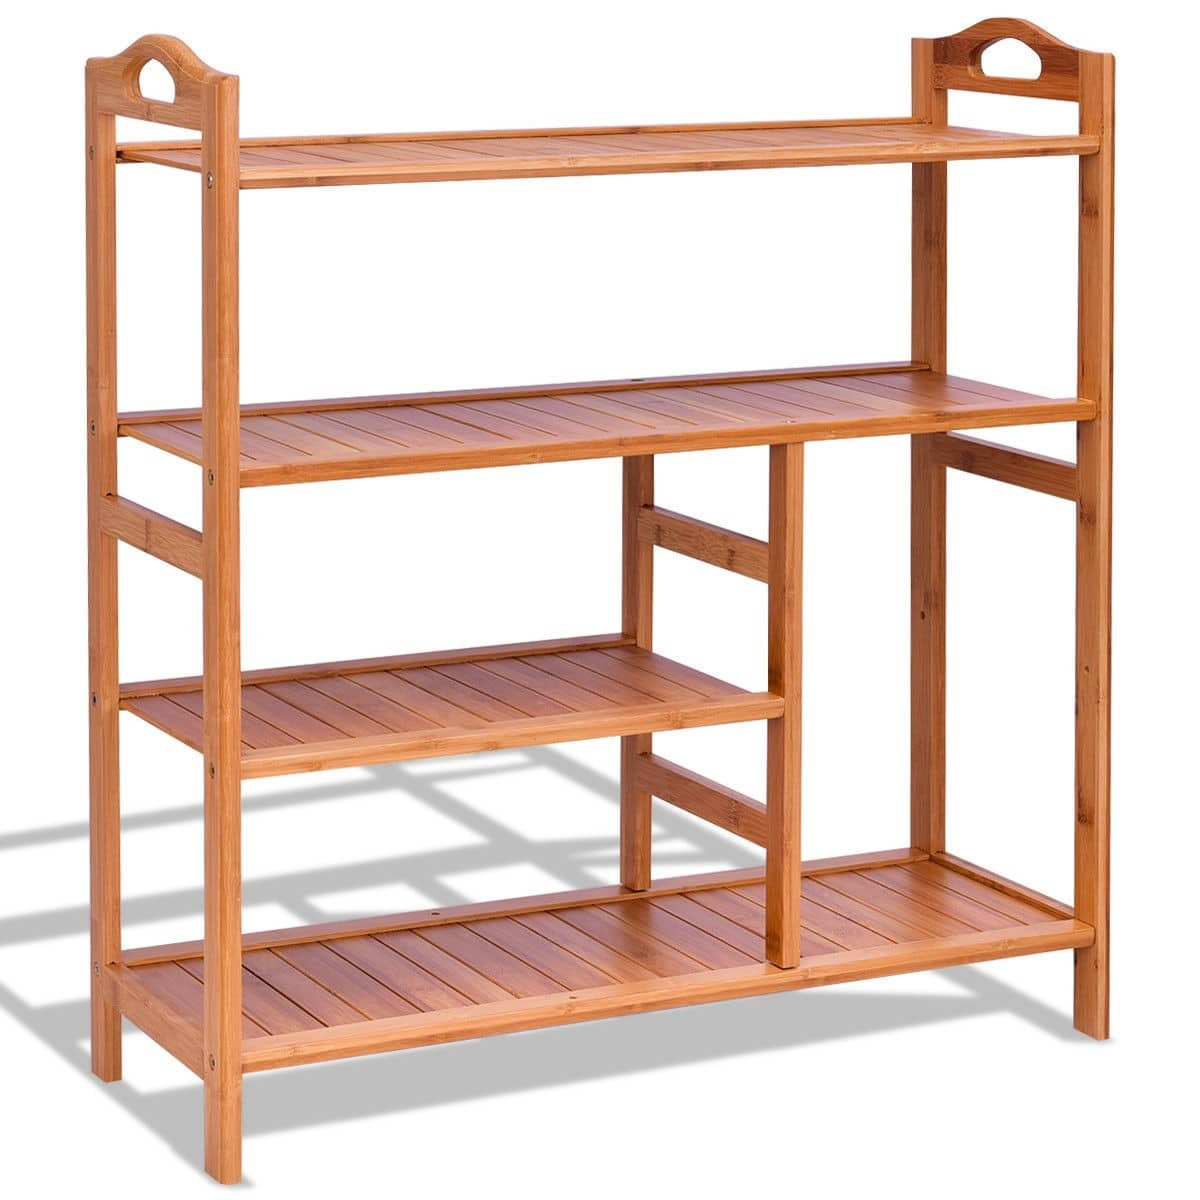 Costway 4-Tier Multi-functional Bamboo Shoe Storage Rack $20.95 + Free Shipping